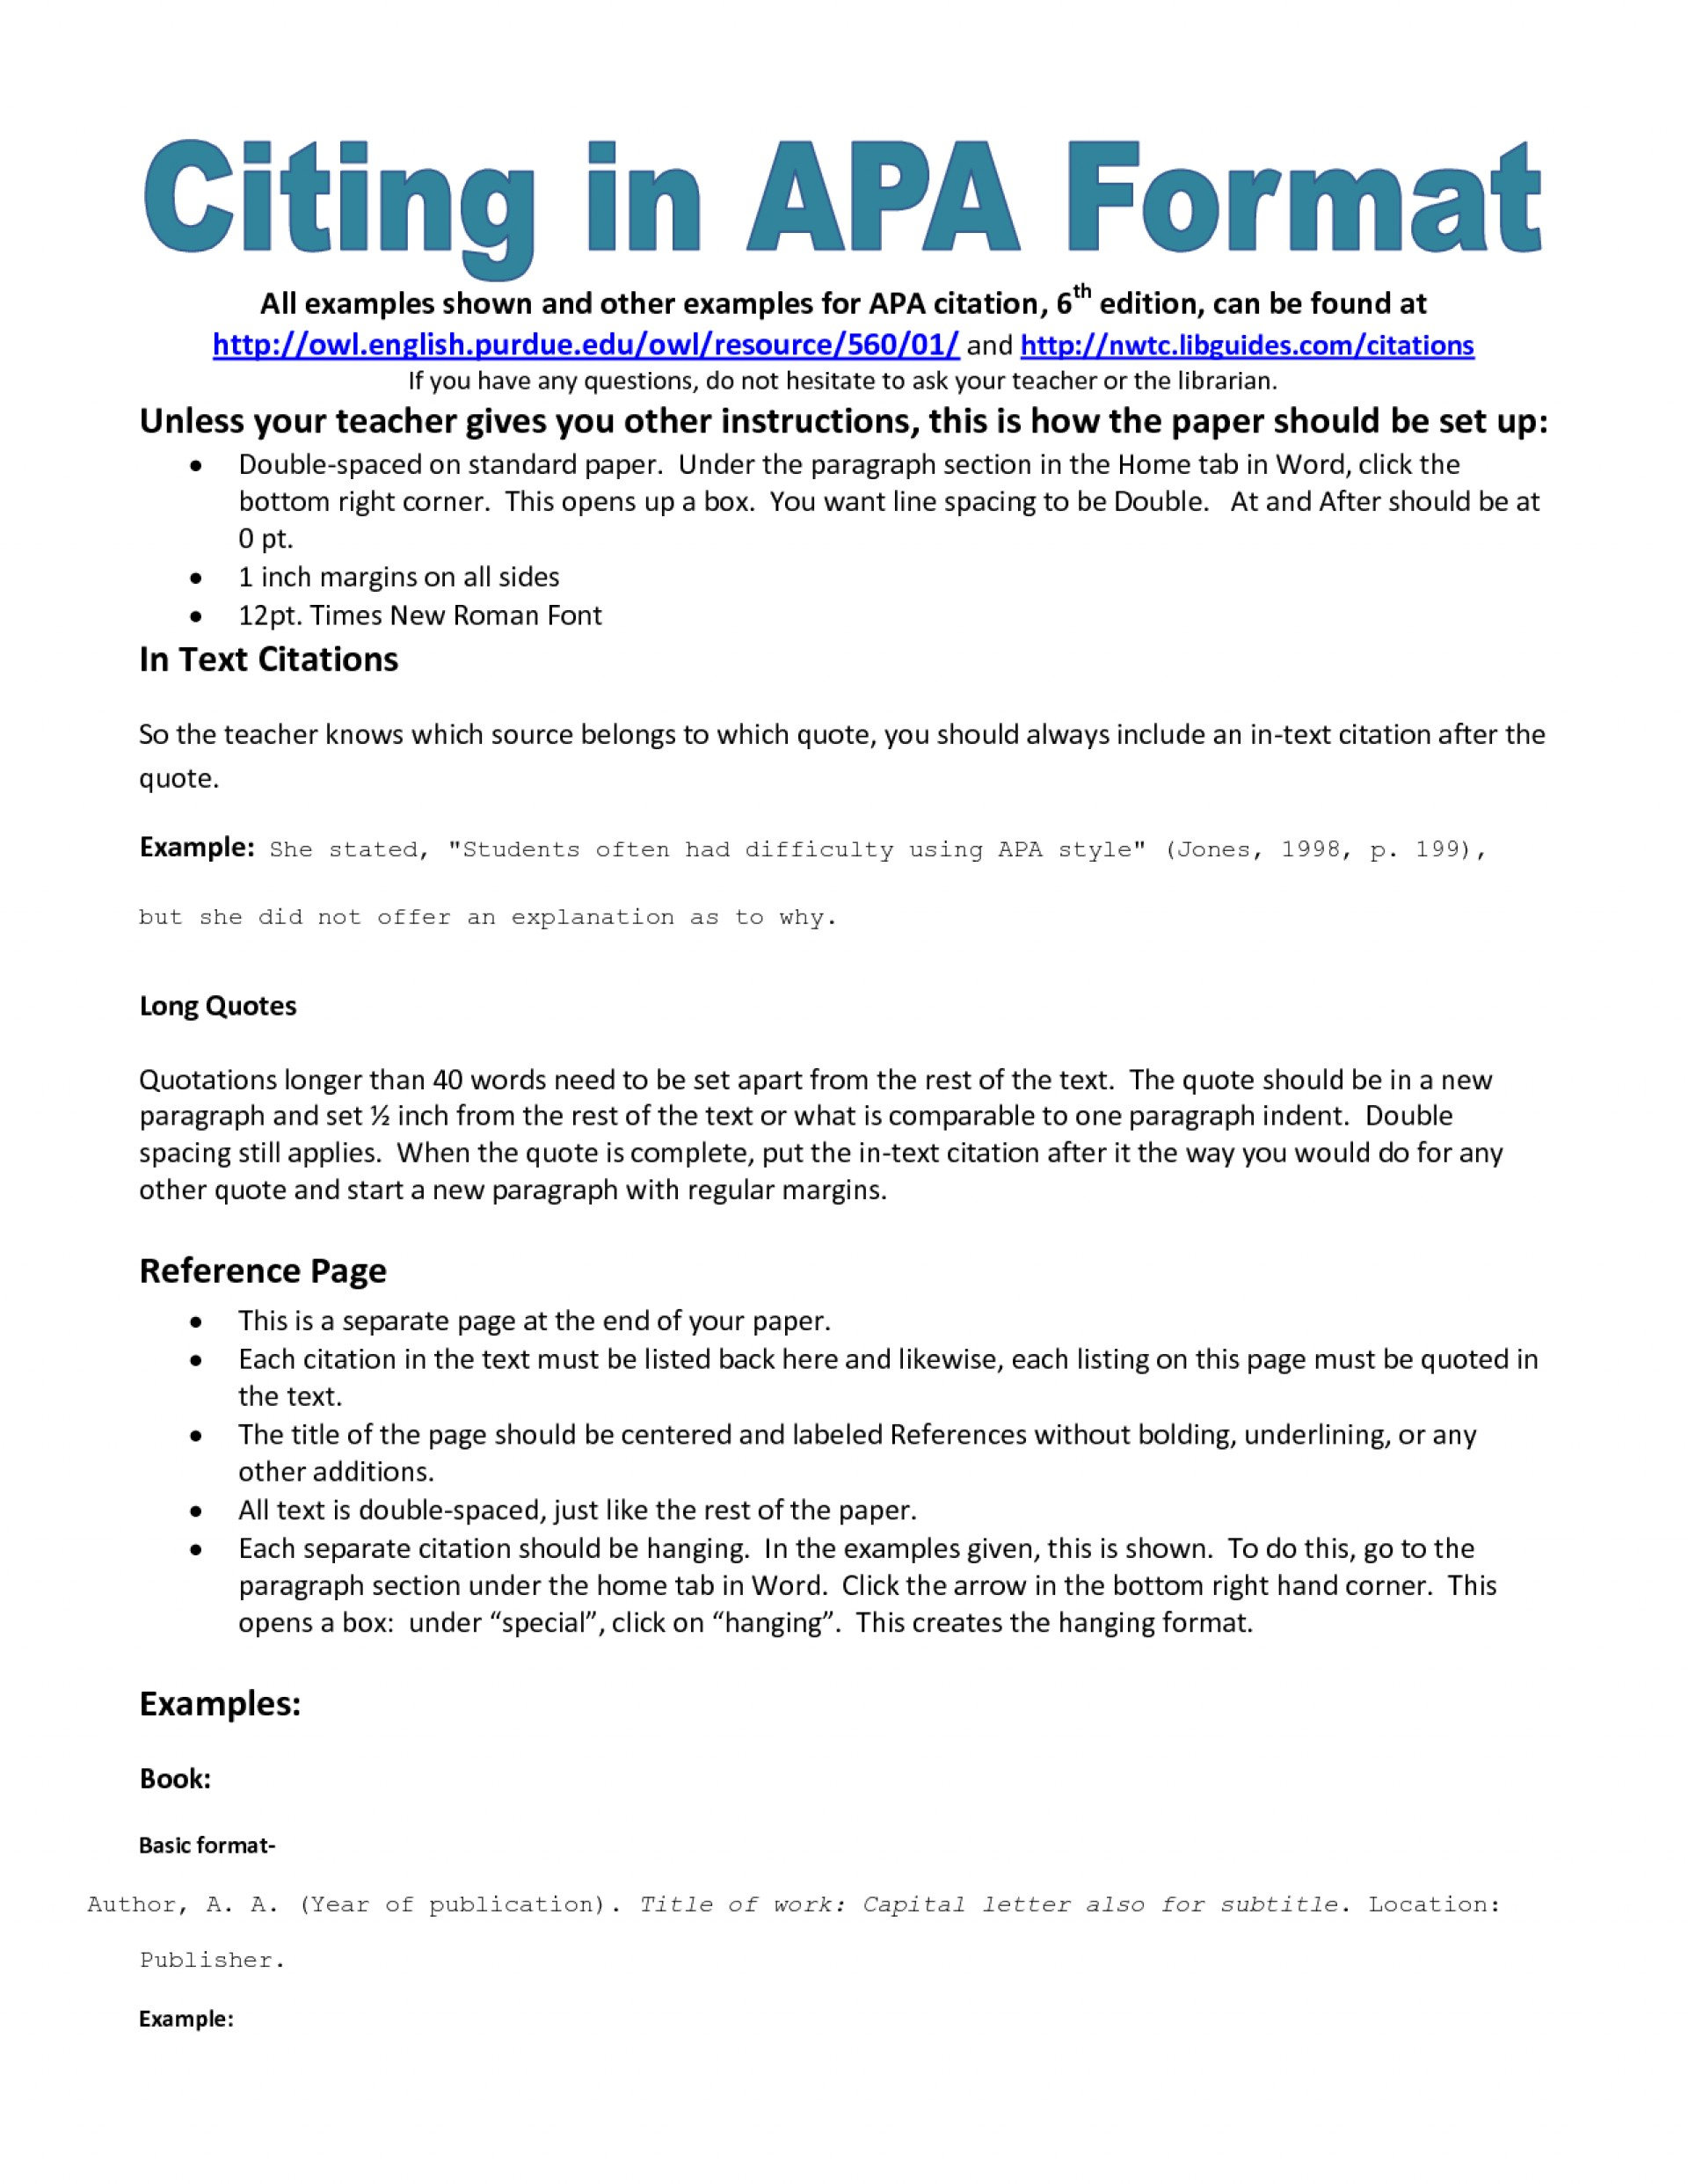 005 Essay Example How To Cite An In Wonderful Apa Online Research Paper Using Unpublished Conference 1920